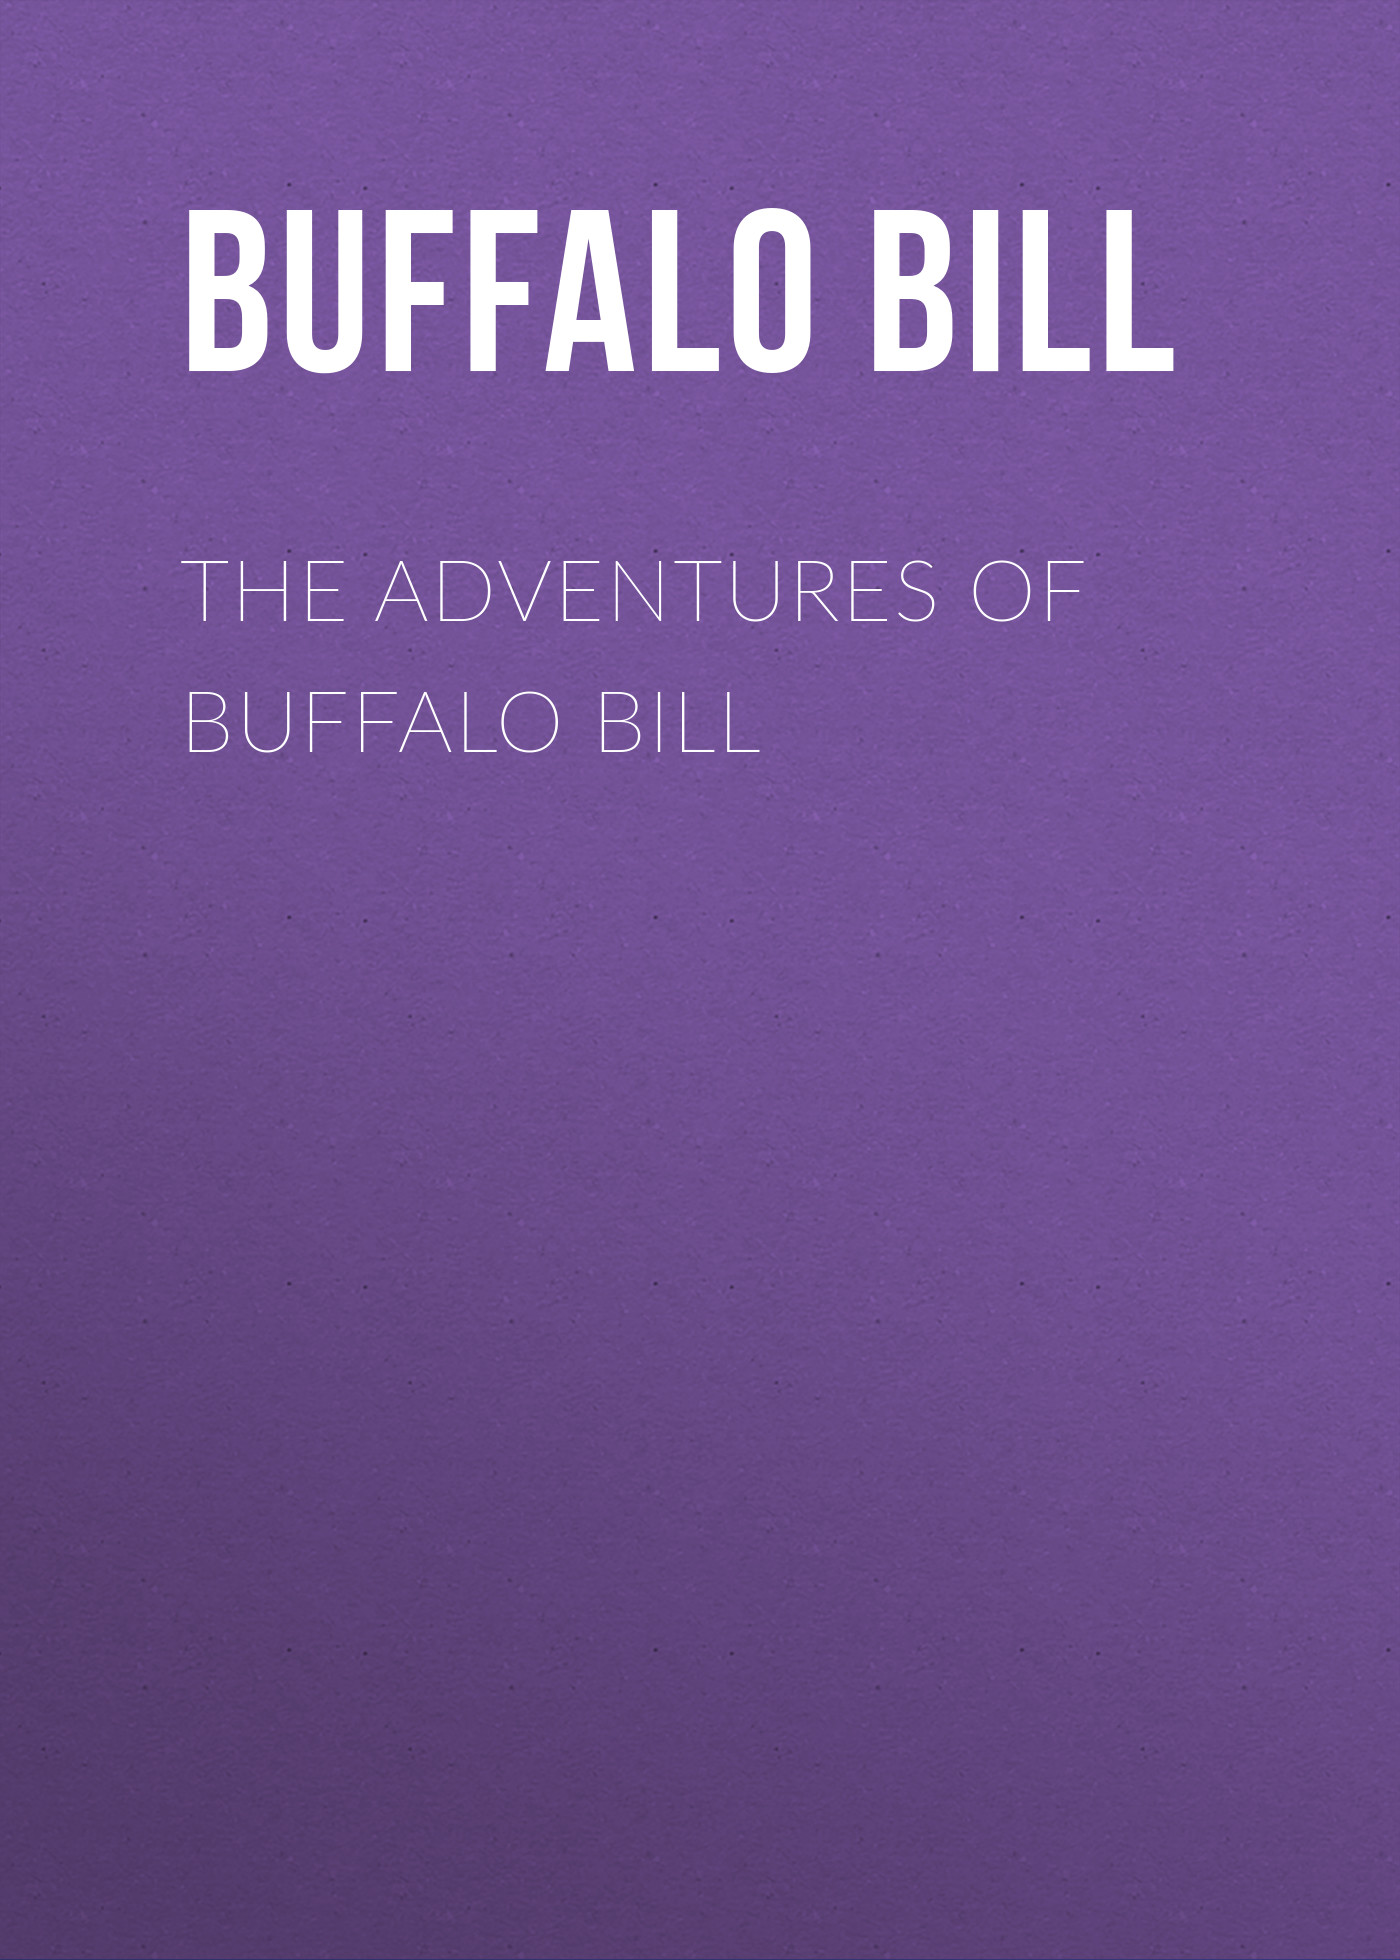 Buffalo Bill The Adventures of Buffalo Bill кофточка quelle buffalo 542228